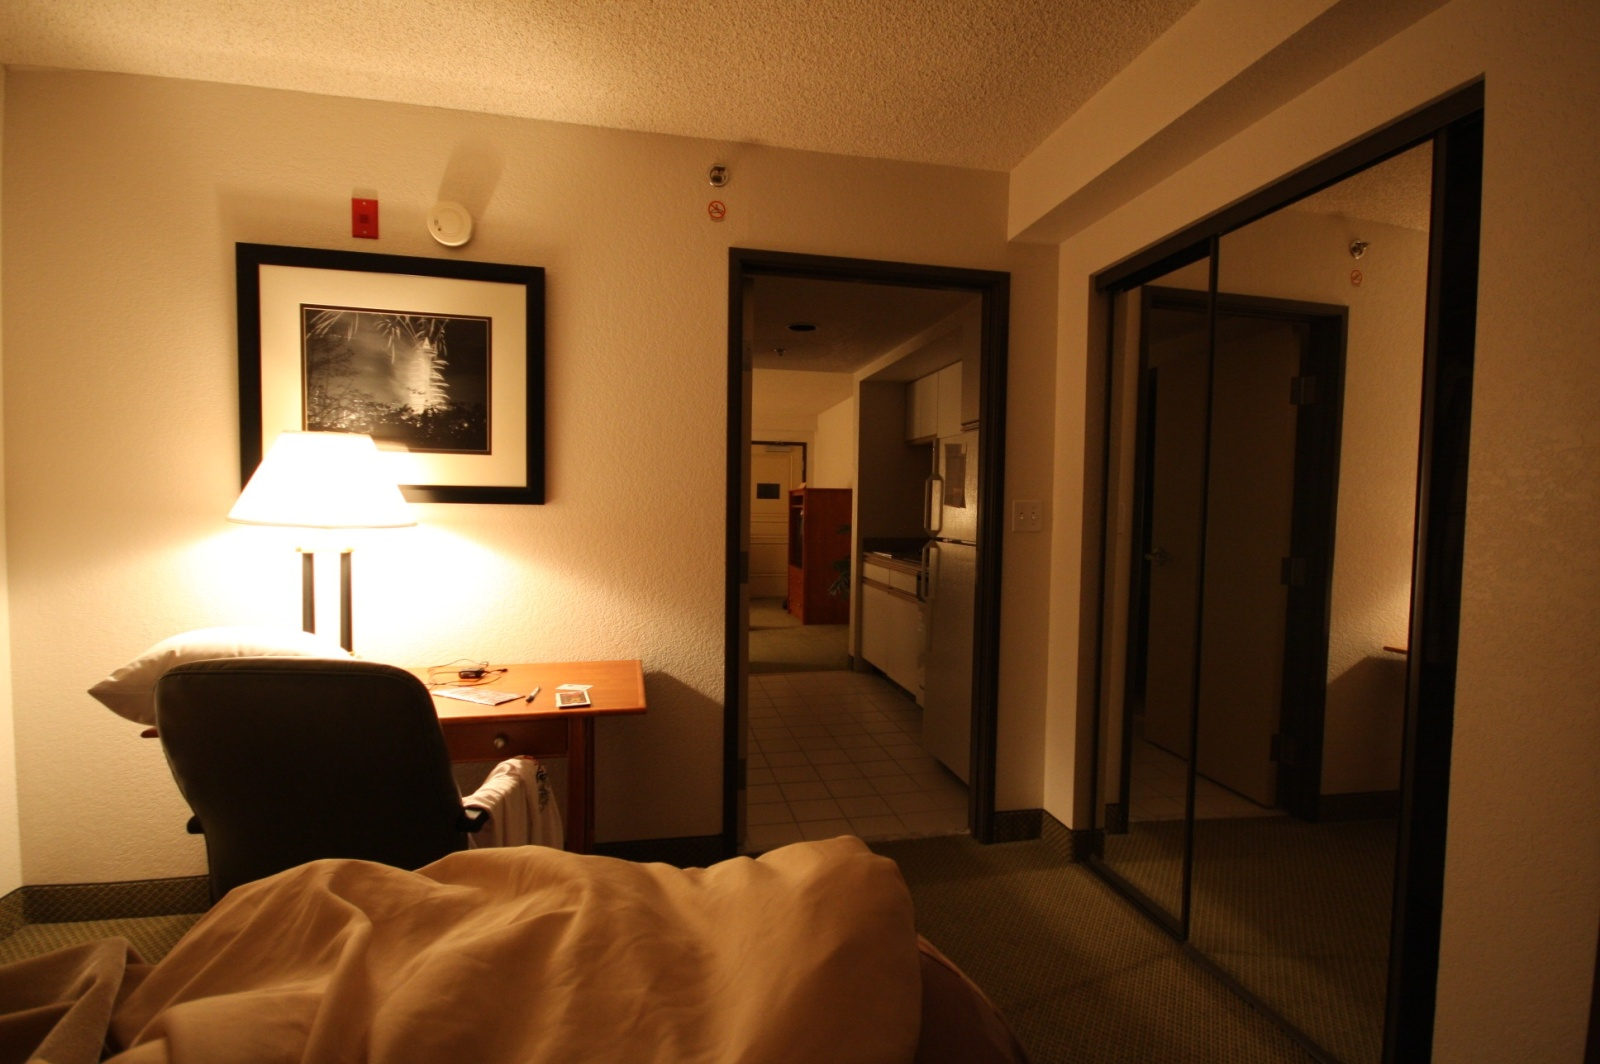 Homewood Suites by Hilton, Seattle